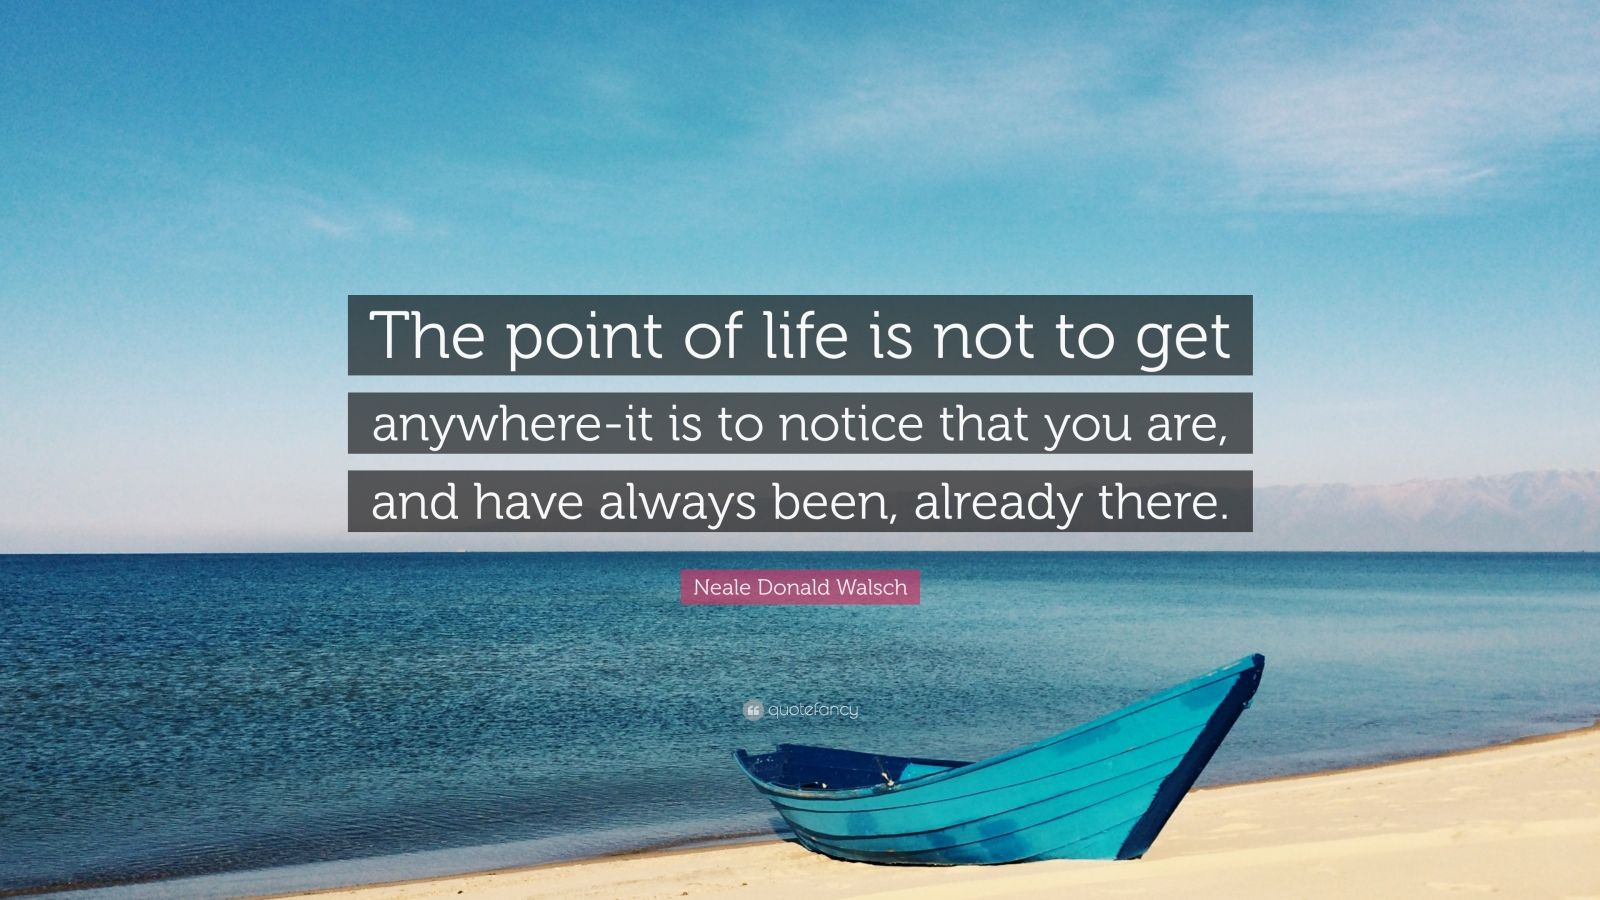 """Neale Donald Walsch Quote: """"The point of life is not to get anywhere-it is to notice that you are, and have always been, already there."""""""